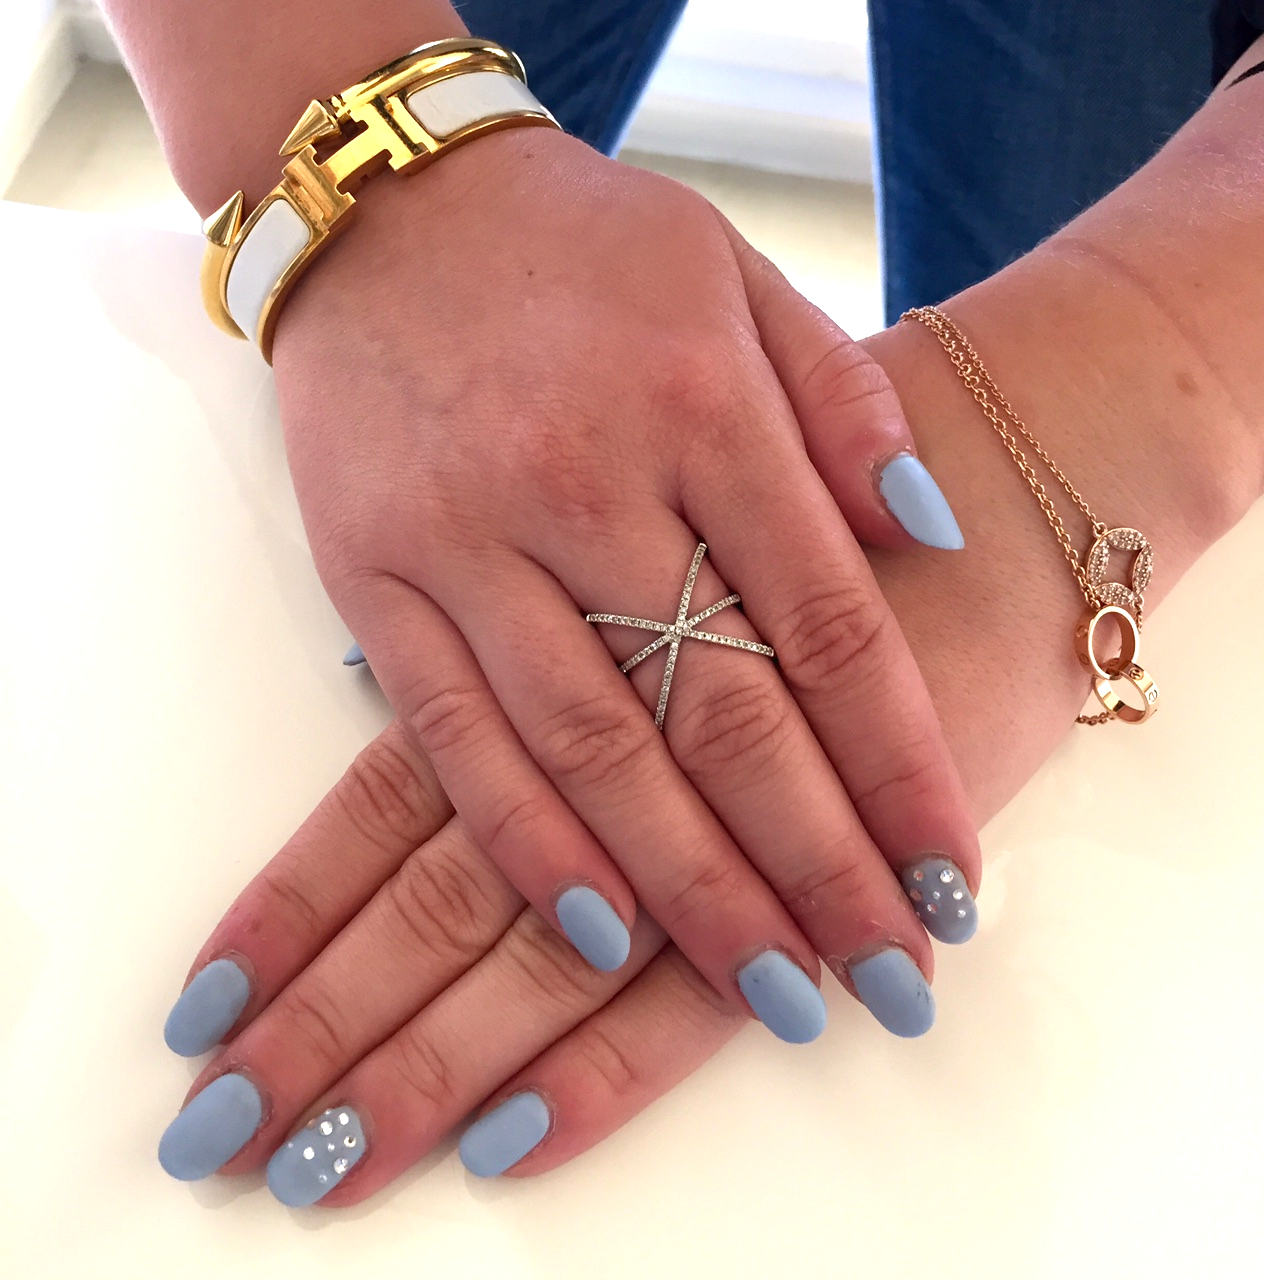 Matte baby blue with stone accent nails. Hand model Rachel Meyers.